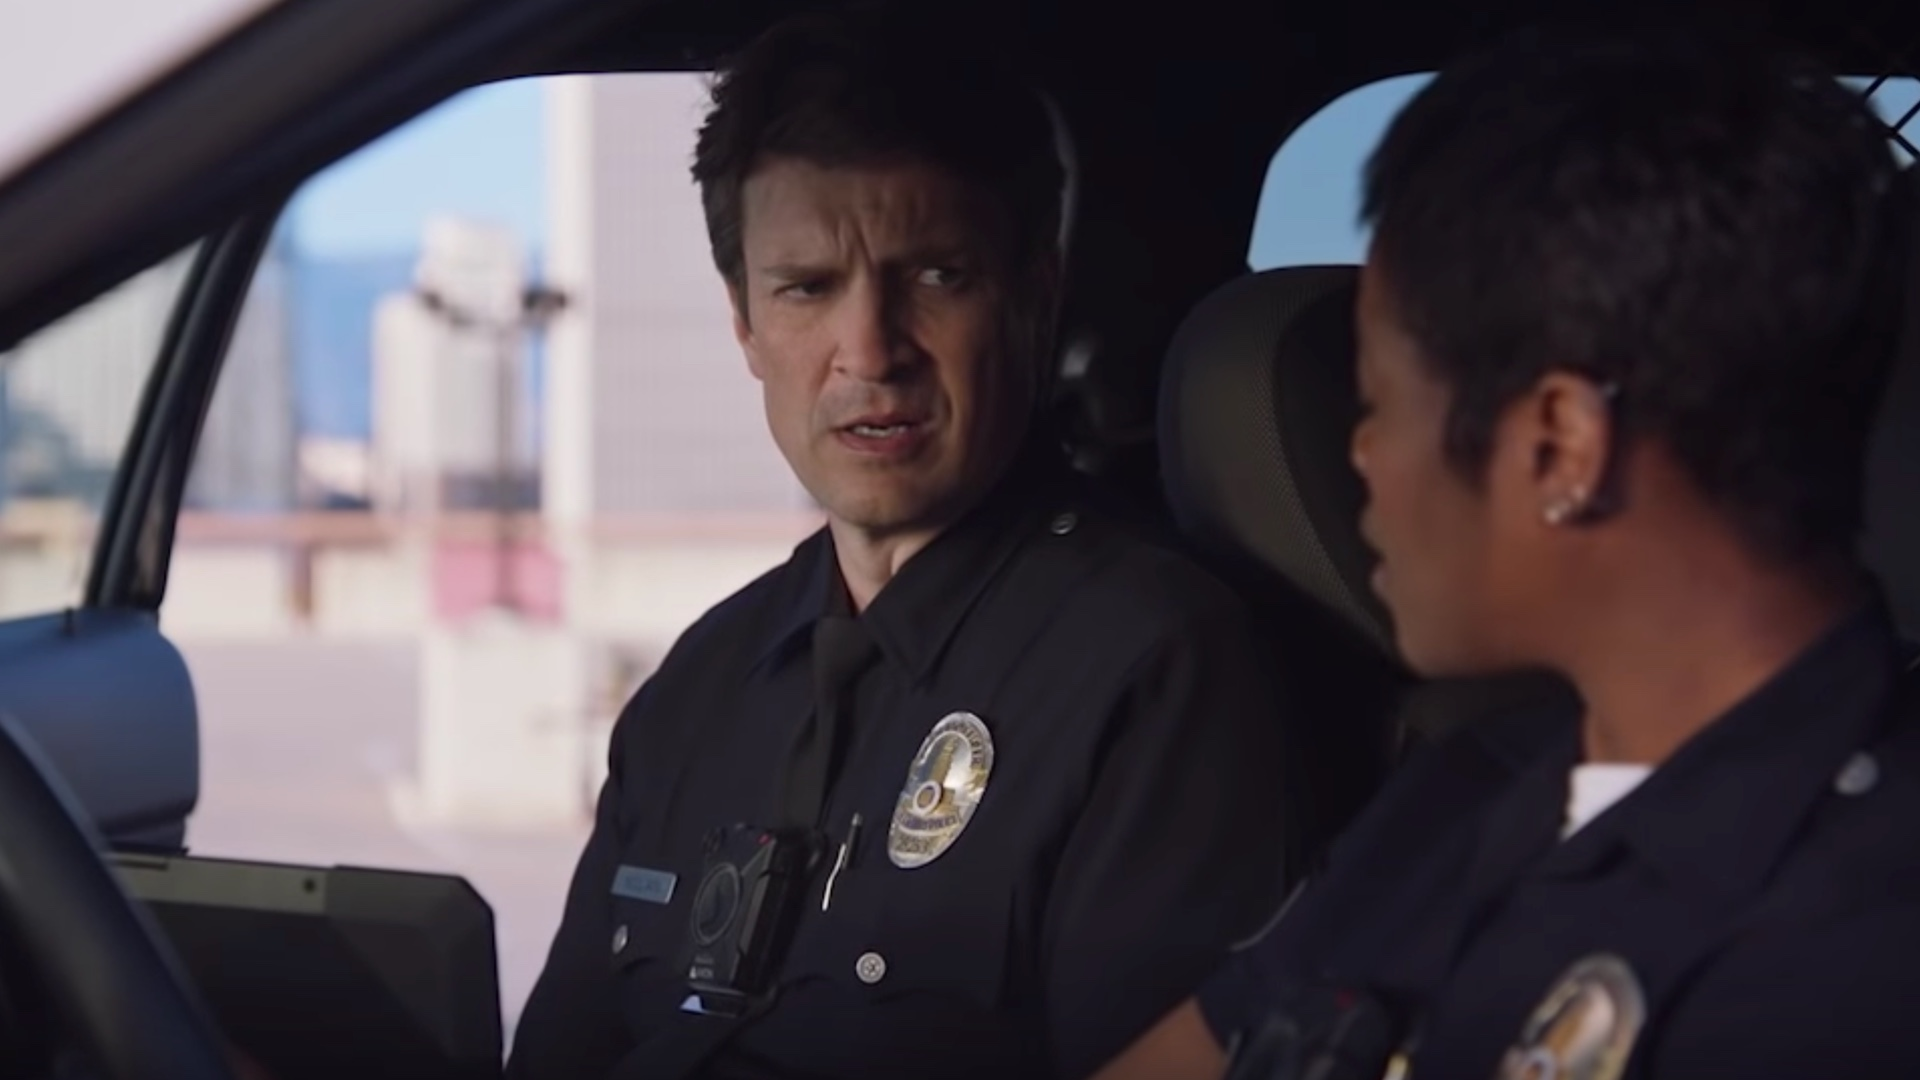 full-trailer-released-for-nathan-fillions-new-cop-series-the-rookie-social.jpg